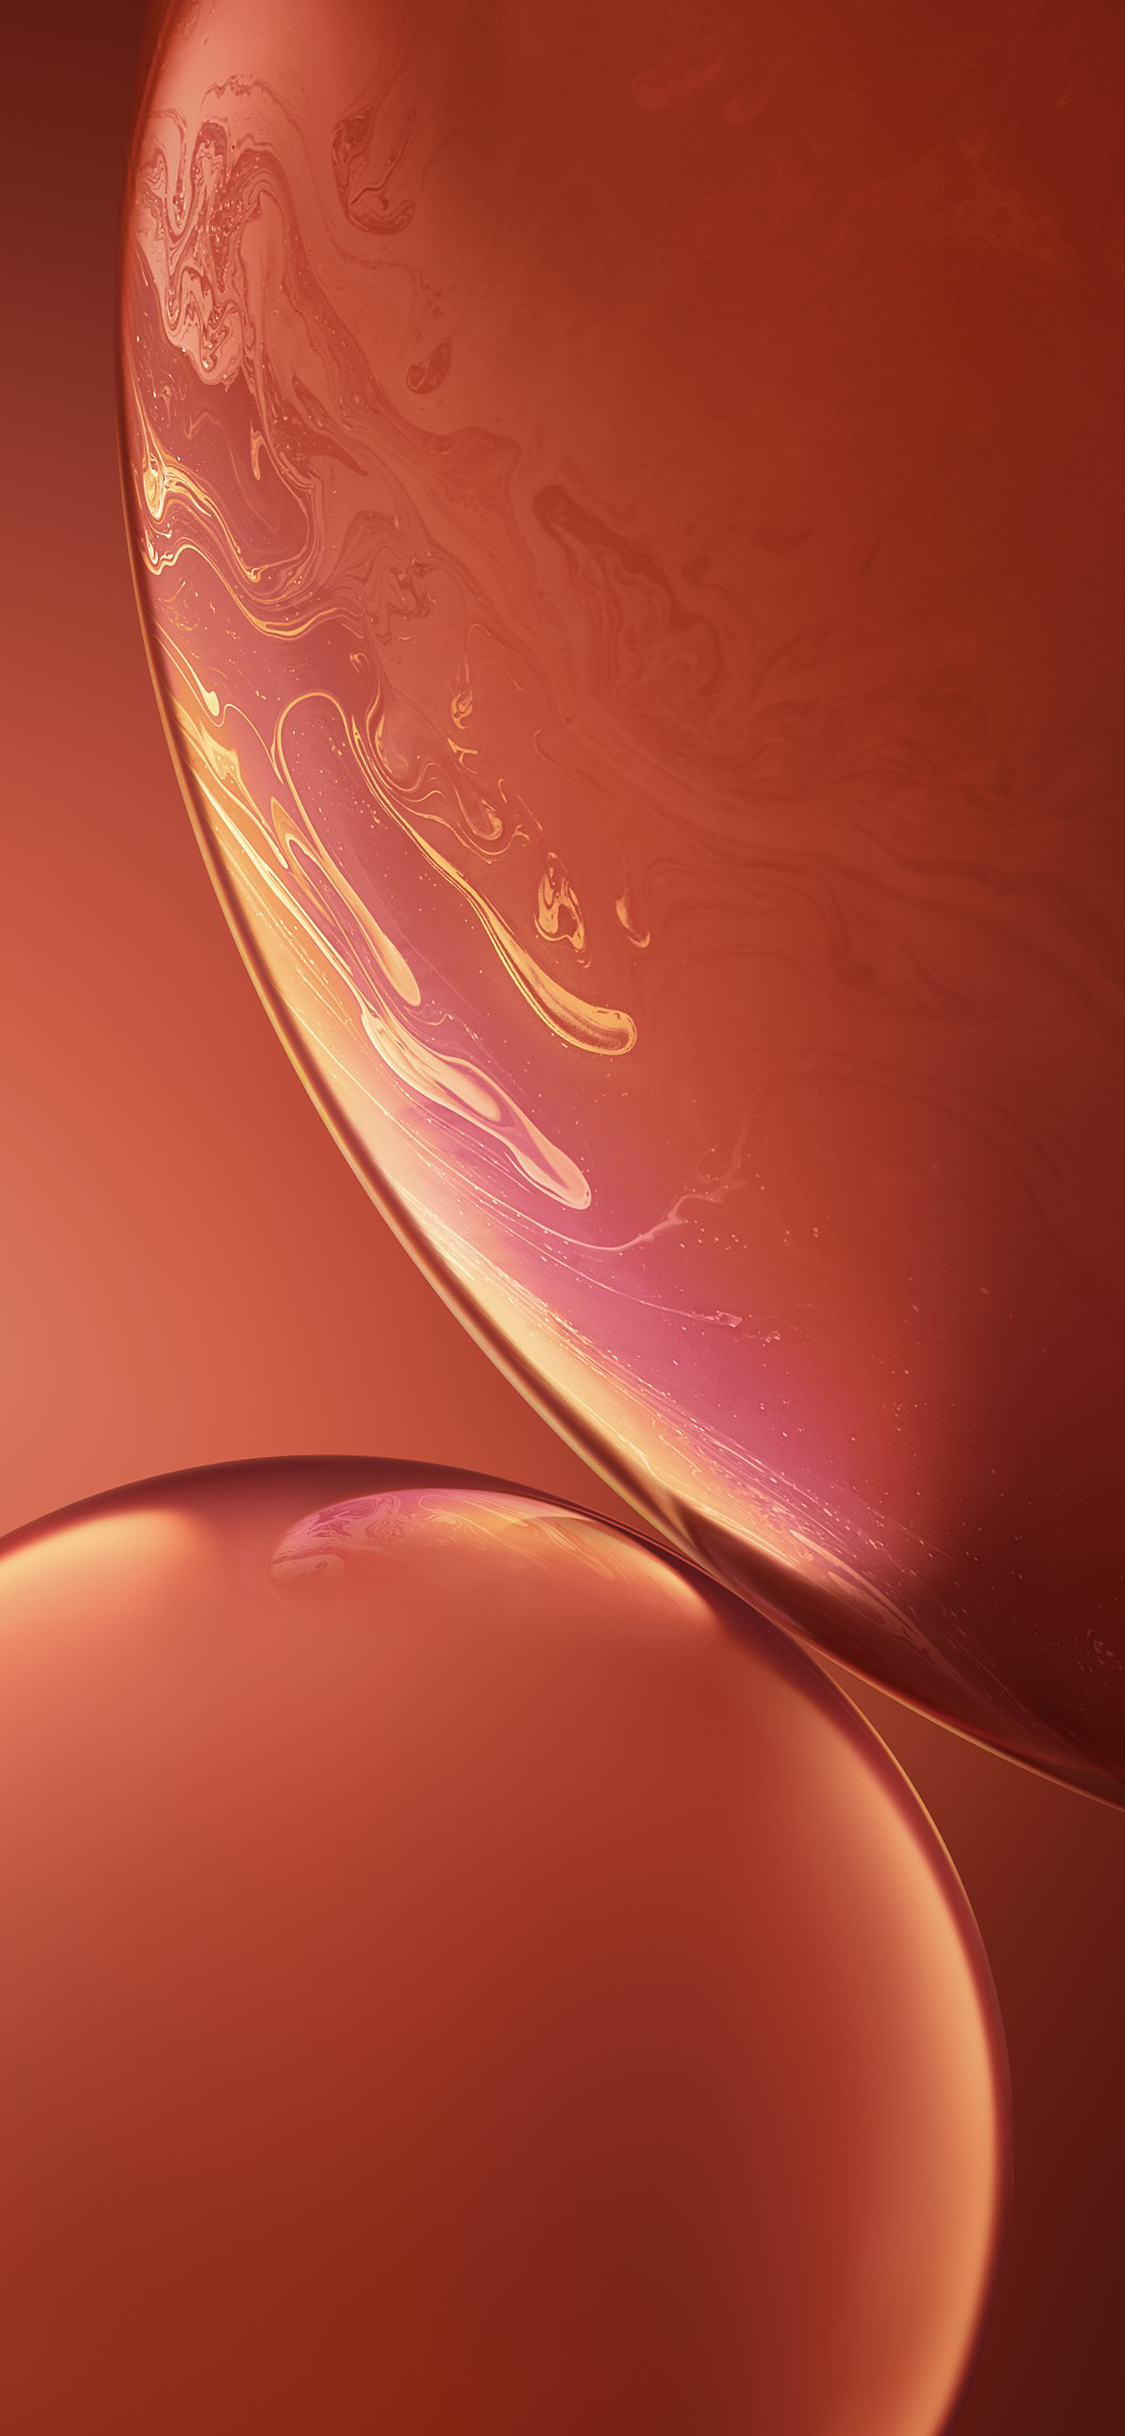 4k Iphone Xr Wallpapers Top Free 4k Iphone Xr Backgrounds Wallpaperaccess